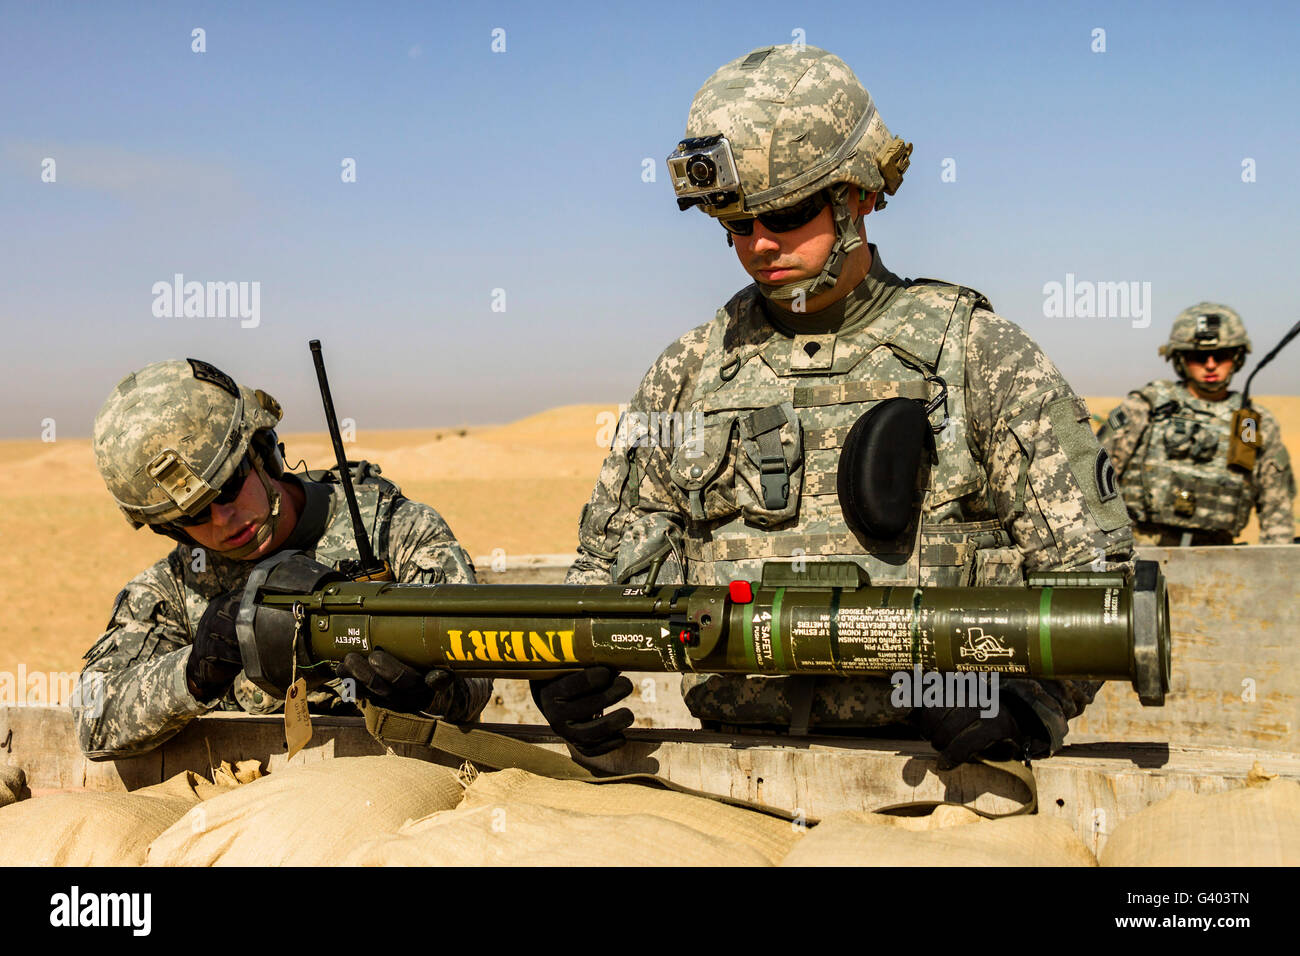 U.S. Army National Guardsmen conduct a live fire of the AT-4 anti-tank weapon. - Stock Image